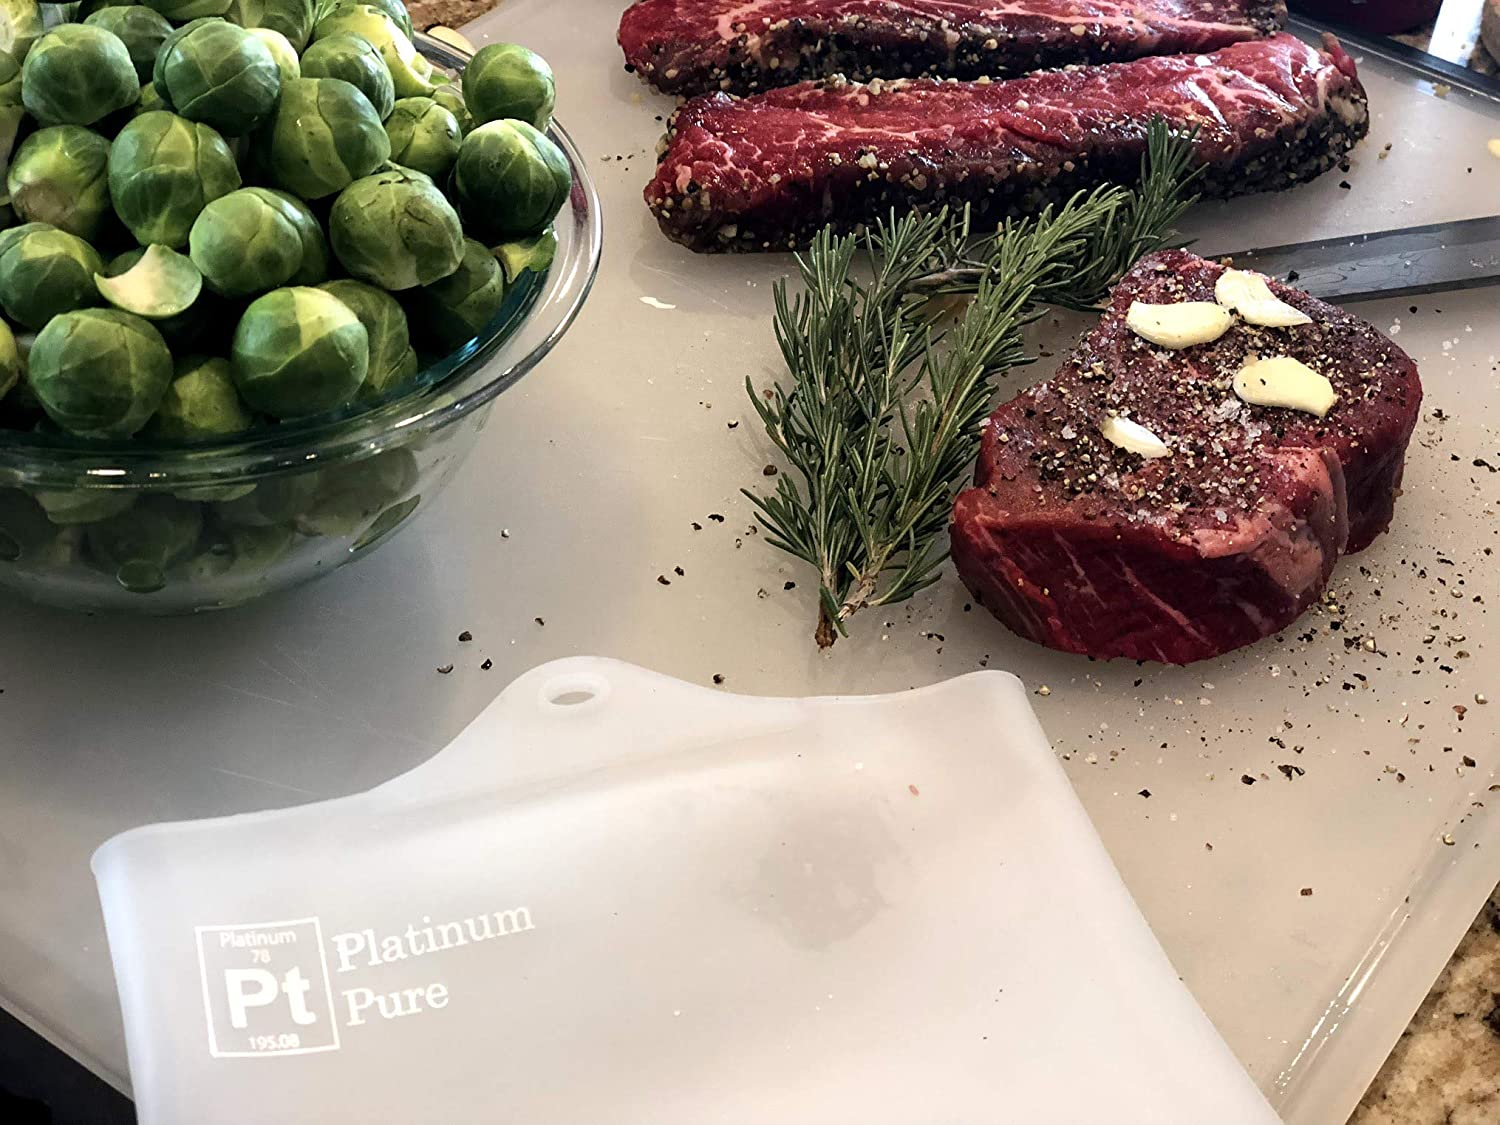 Platinum Pure - Large Reusable Sous Vide Bags - Set of 2 BPA Free Bags for Sous Vide Cooking - 100% Pure LFGB Platinum Silicone with no Fillers - Compatible with all immersion circulators, including Joule, Anova, ChefSteps, Kitchen Gizmo, Gramercy Ki